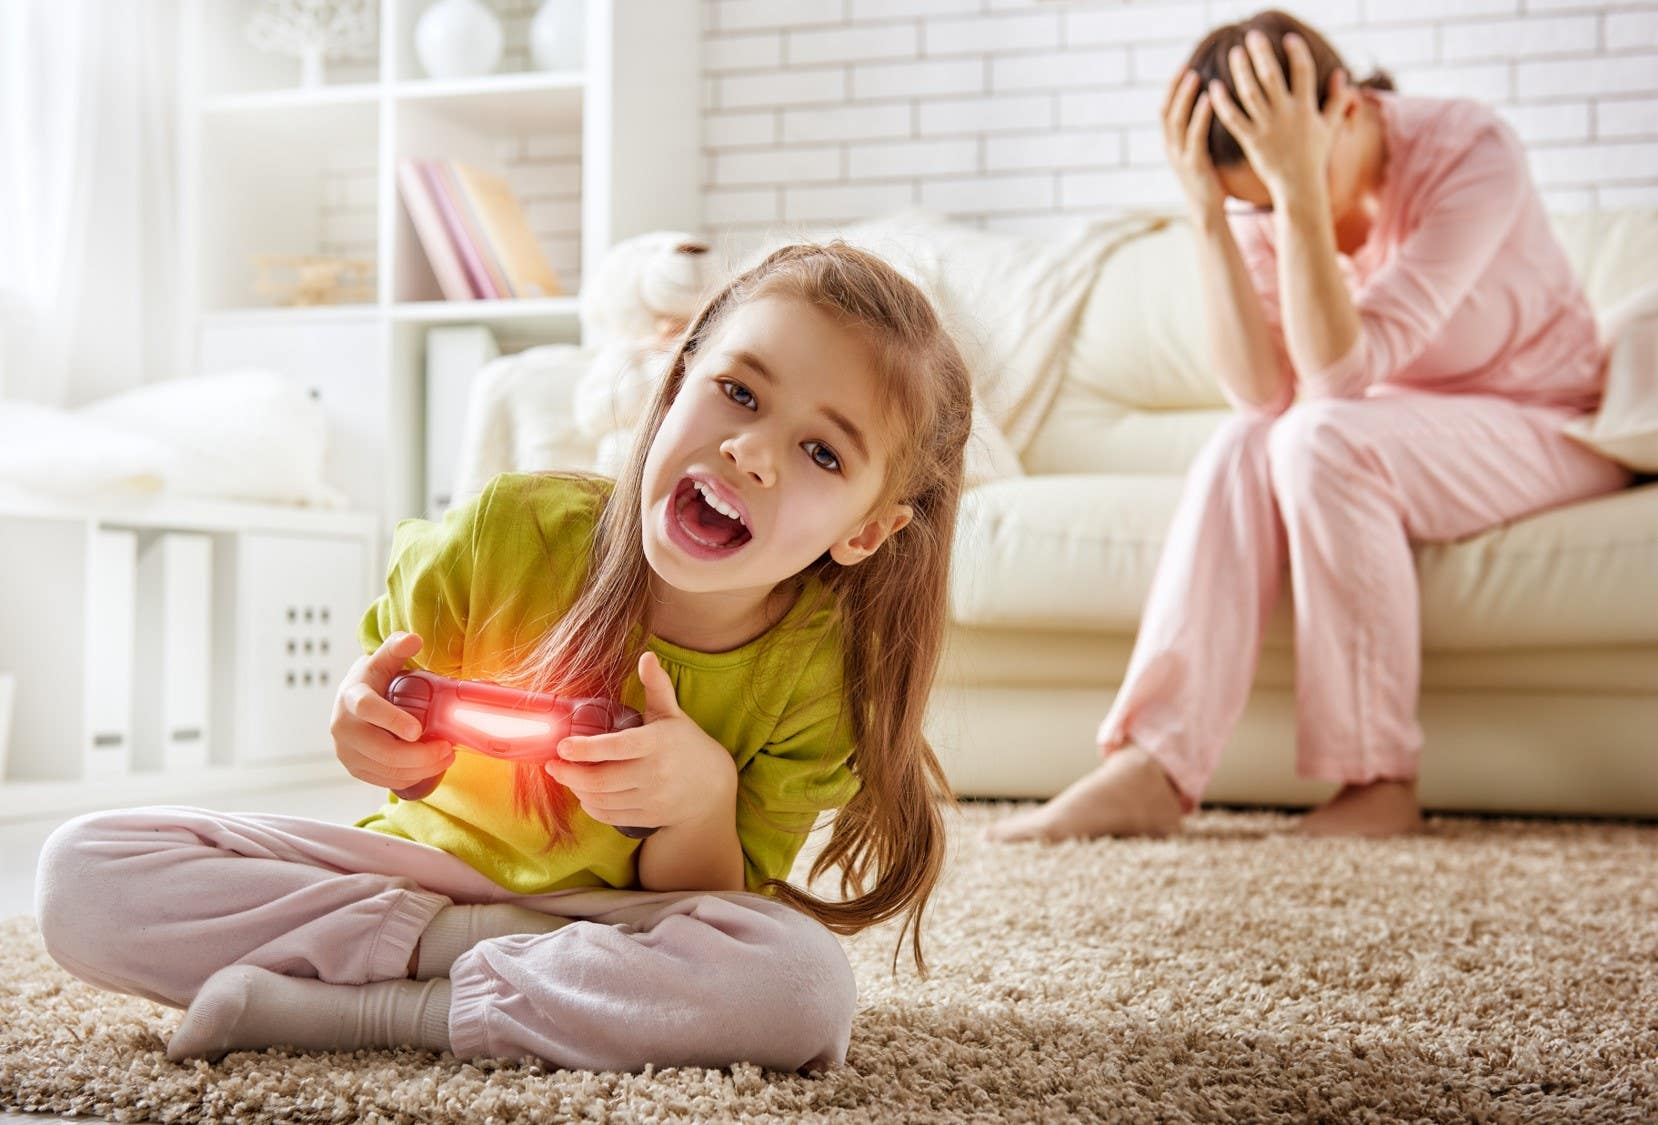 Mother troubled over her daughter's playing a video game